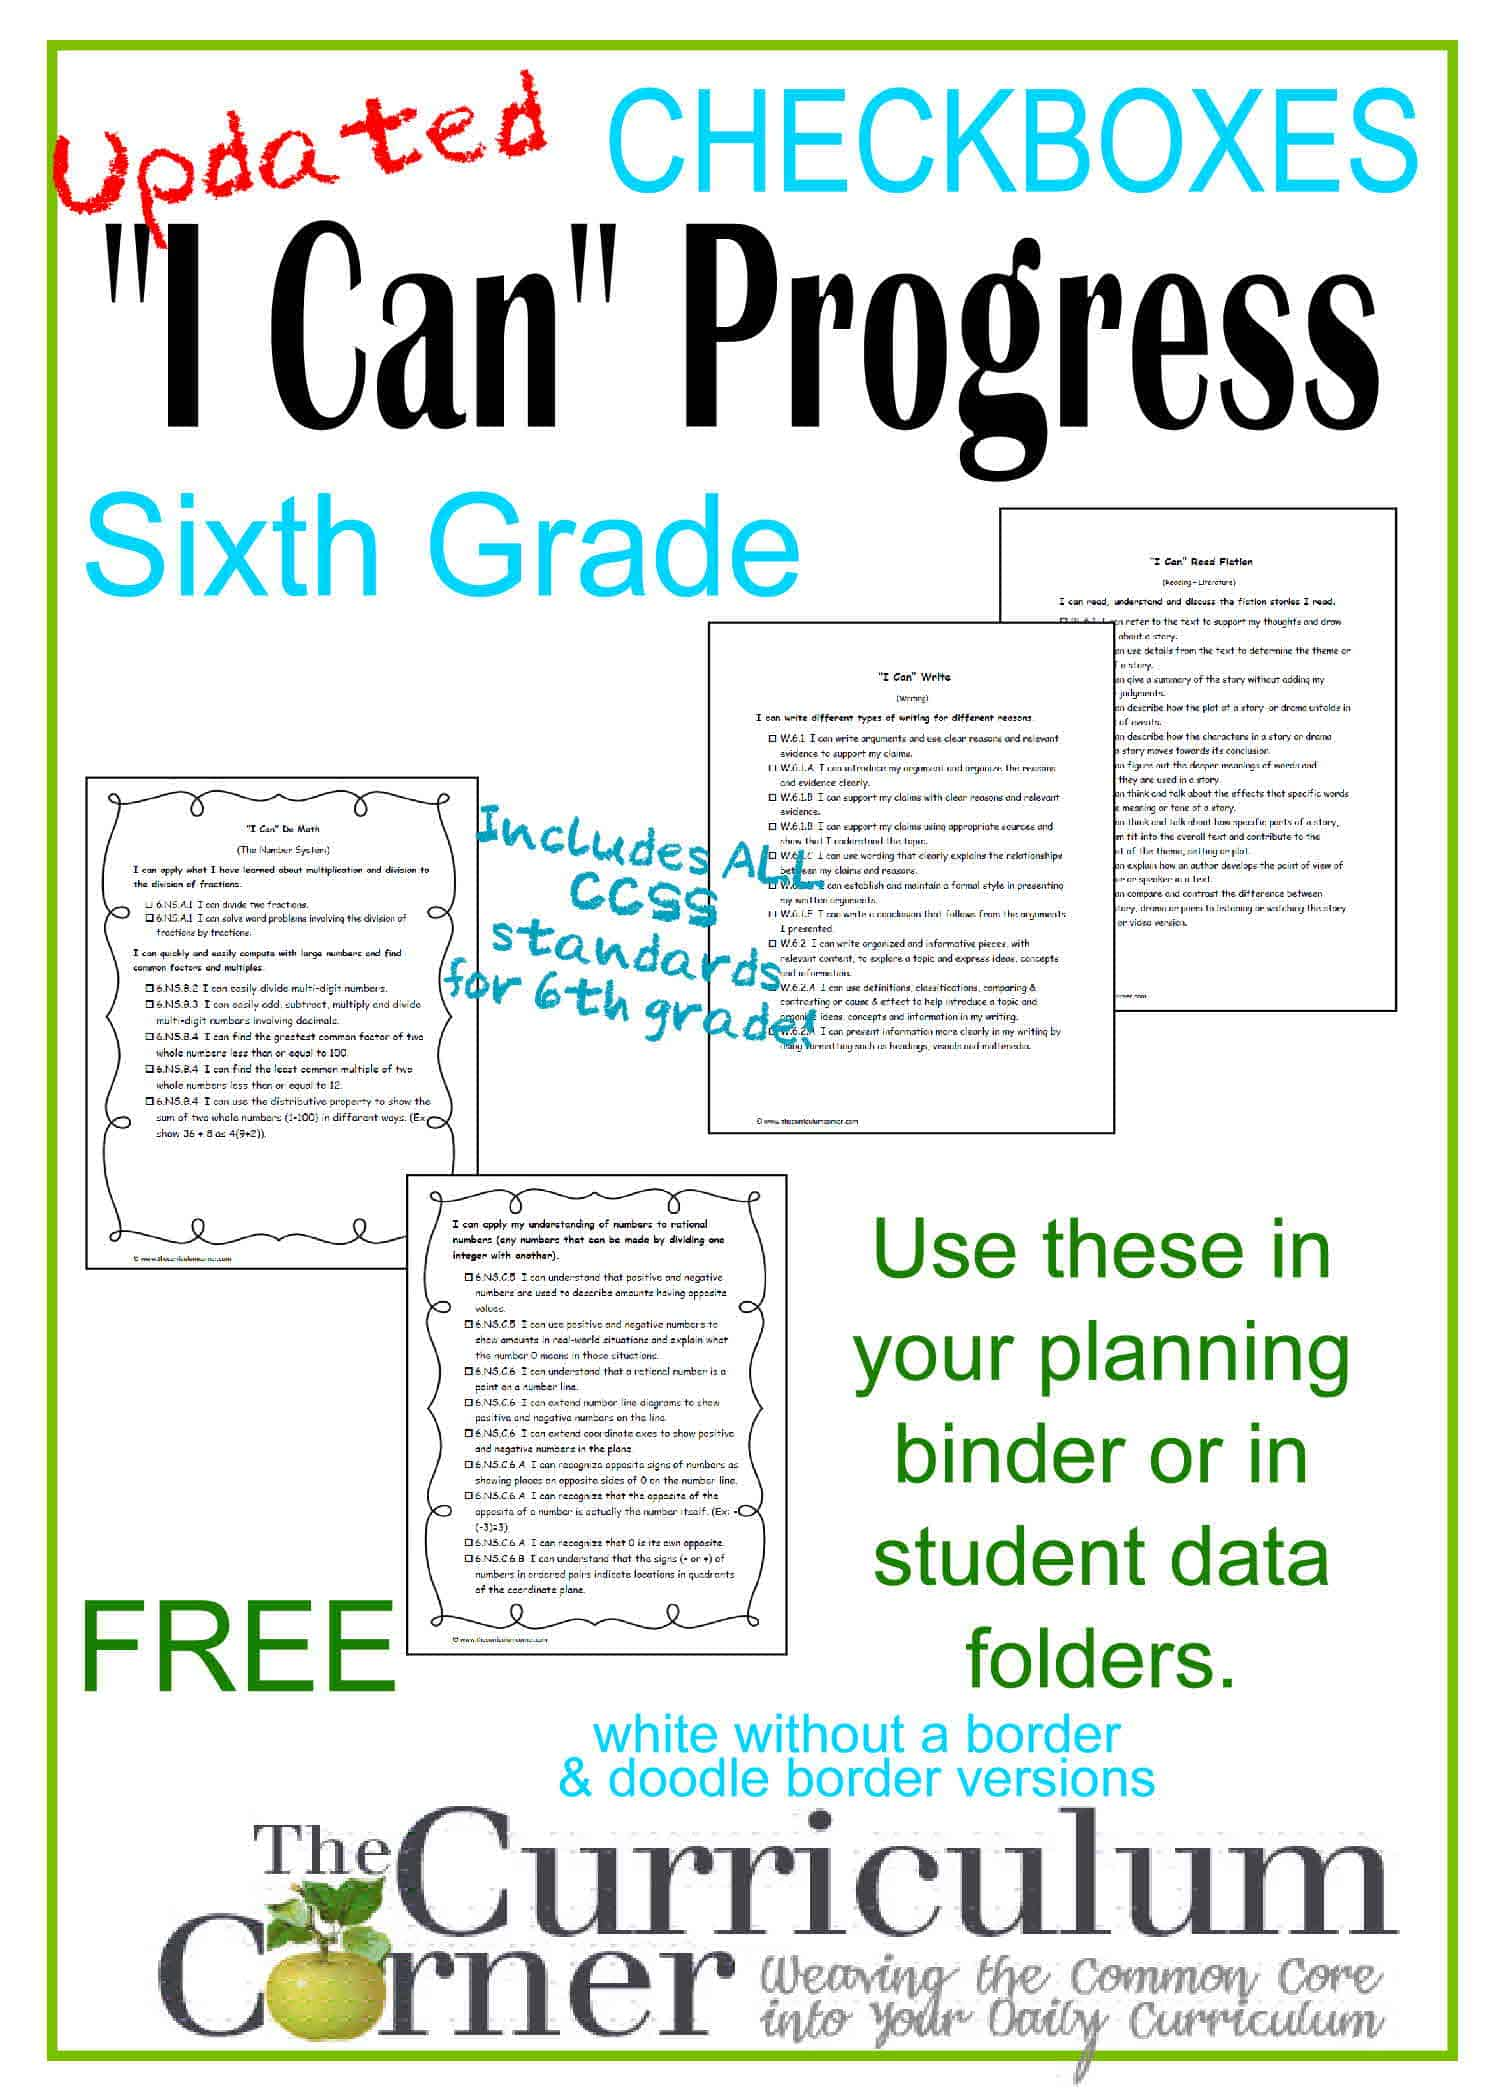 I Can Statements 6th Grade CCSS Progress Checkboxes